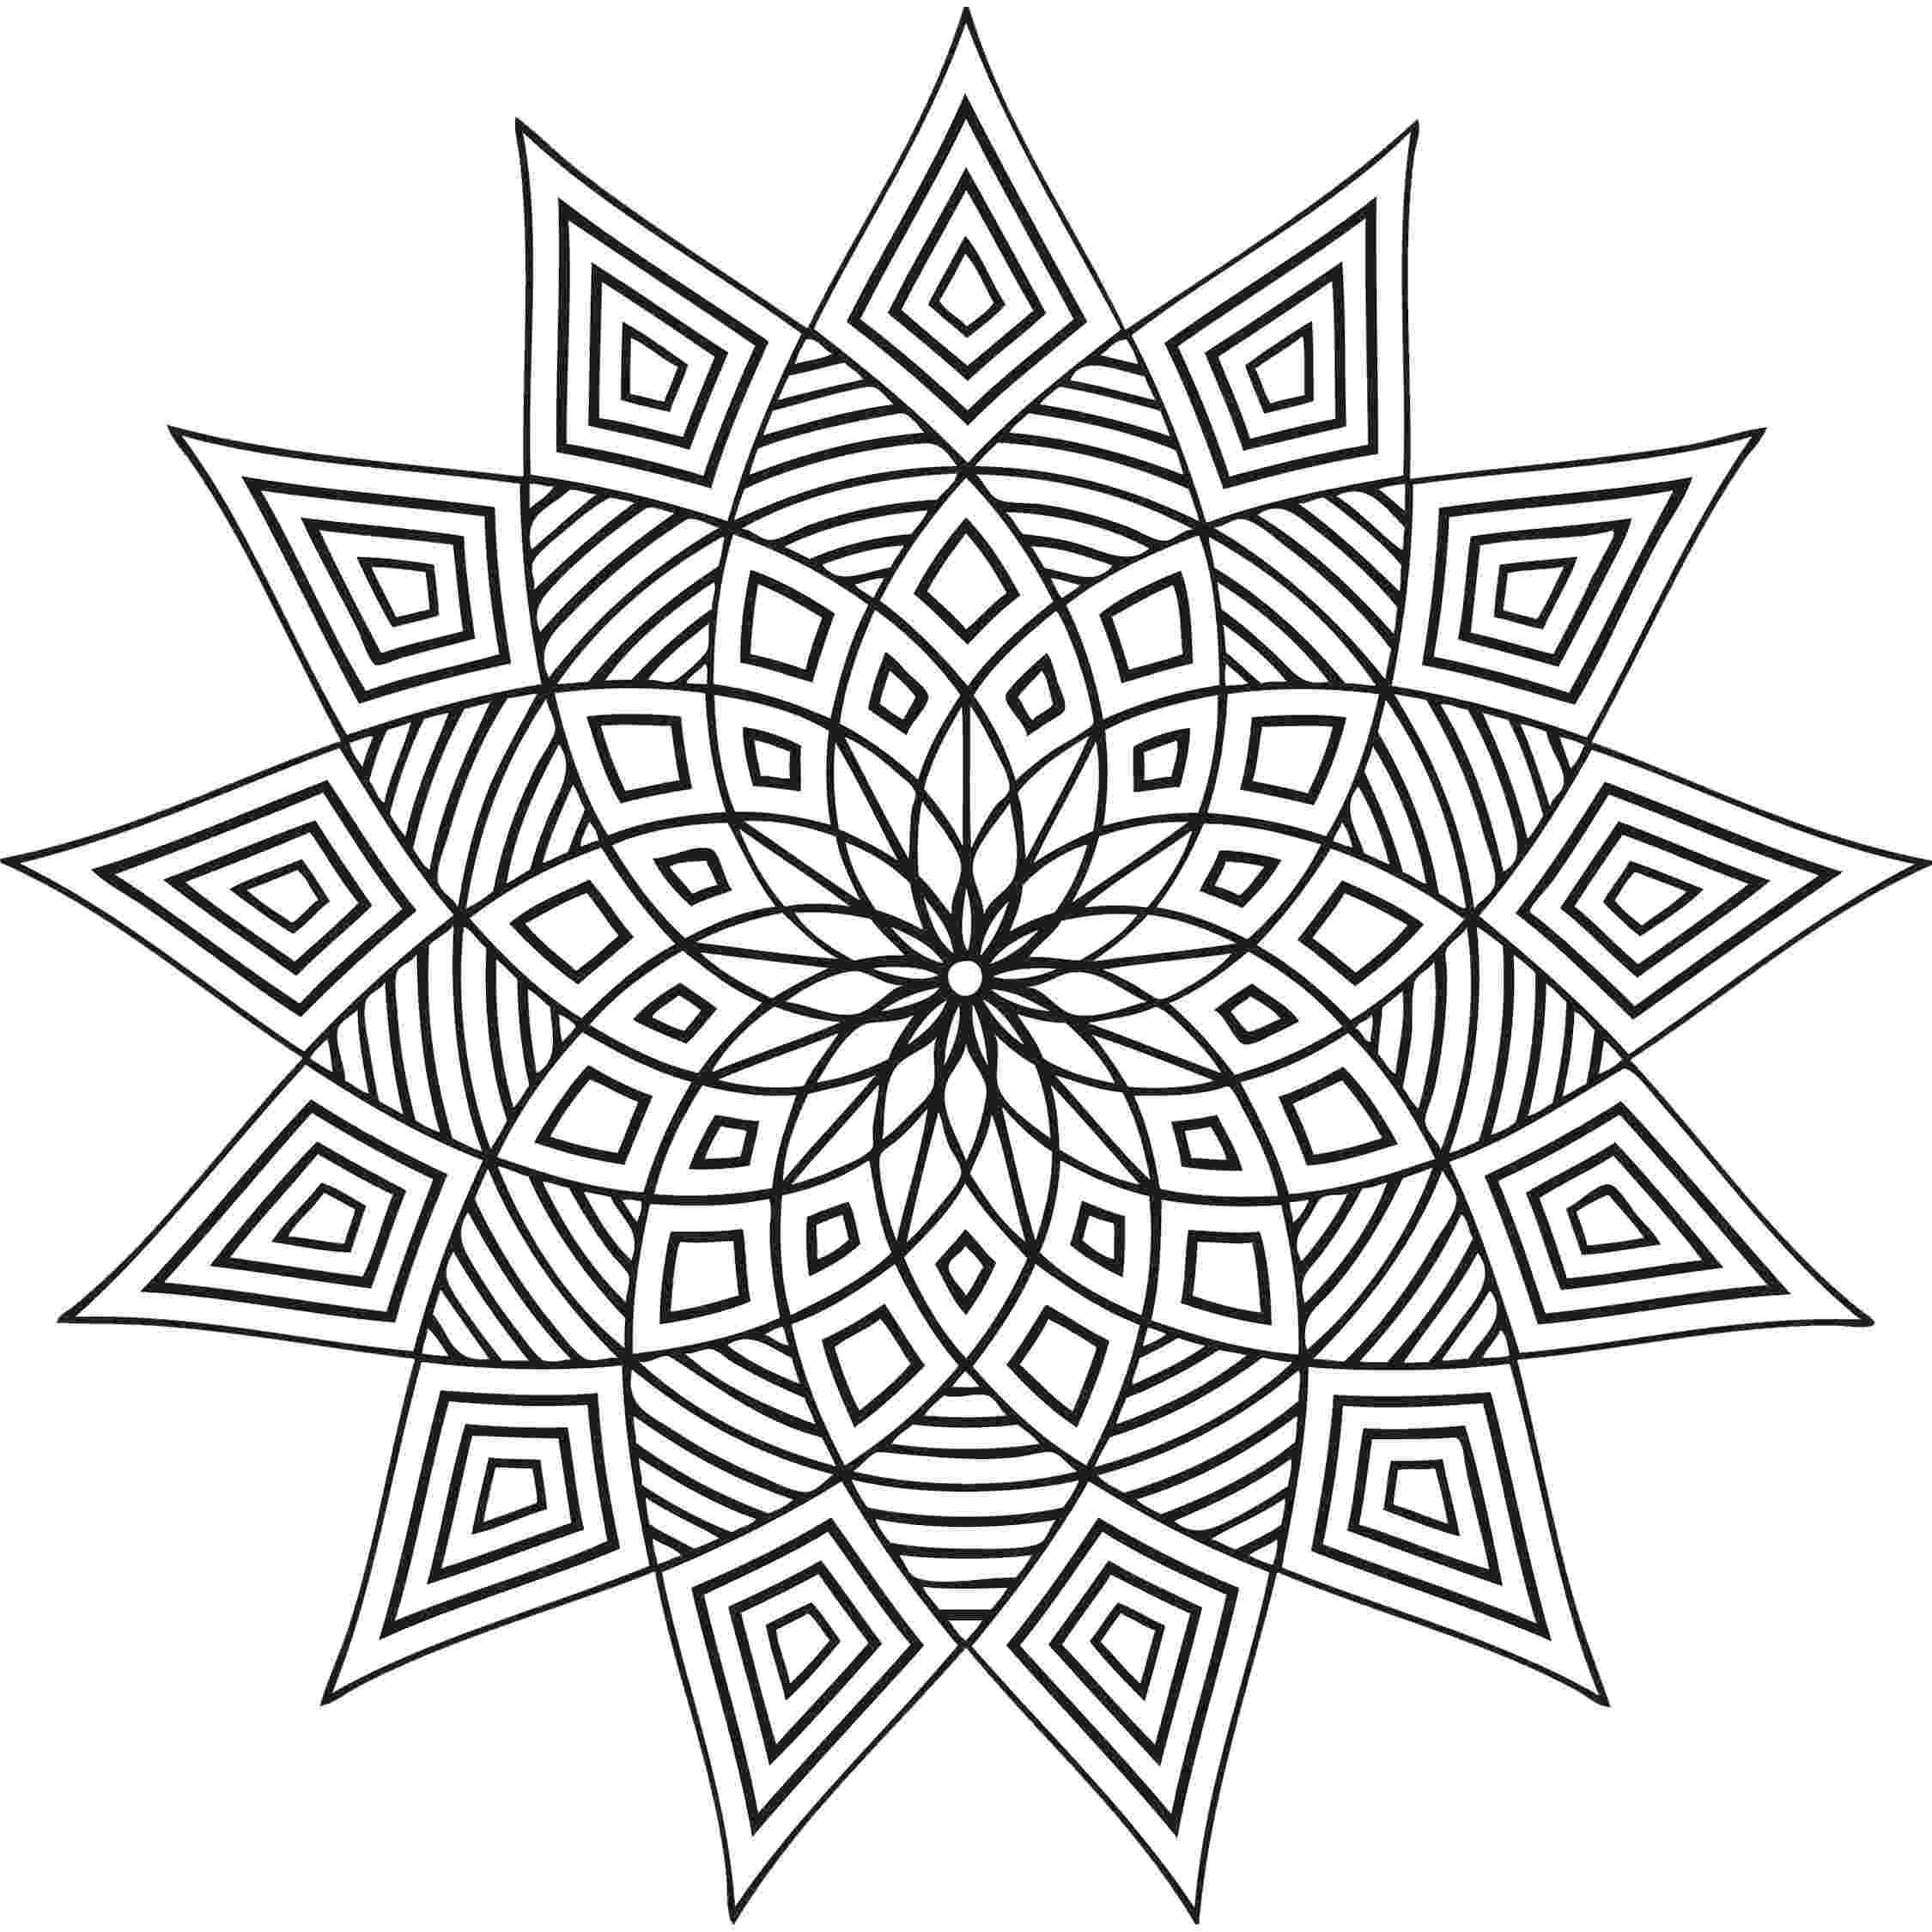 printable designs to color free printable geometric coloring pages for kids printable to designs color